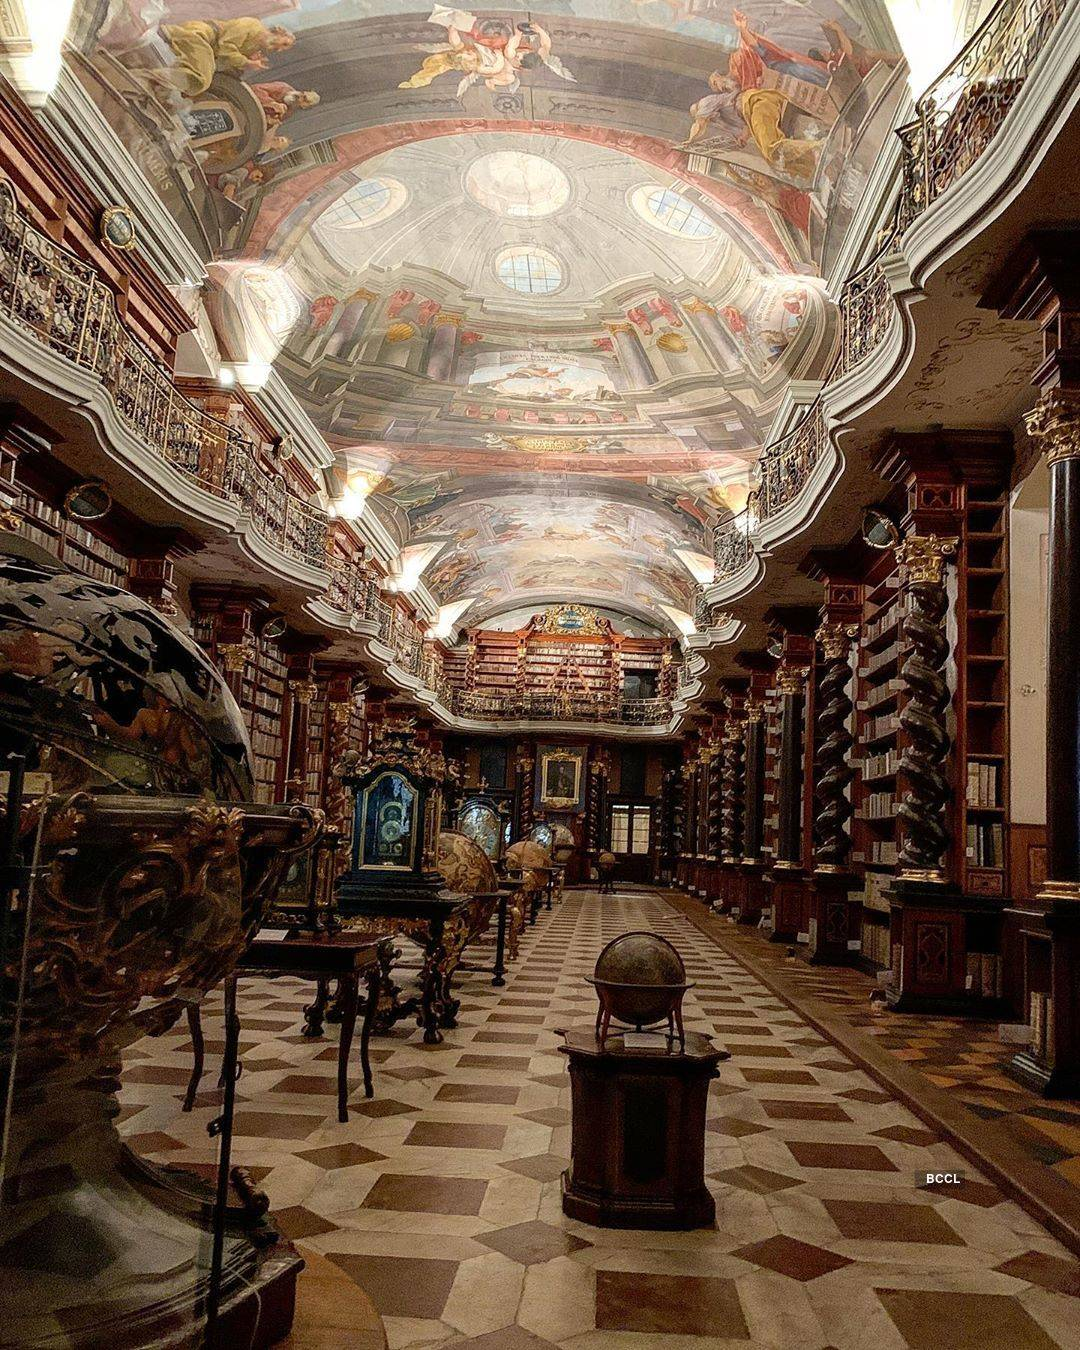 Mesmerising pictures of libraries around the world every book lover must see